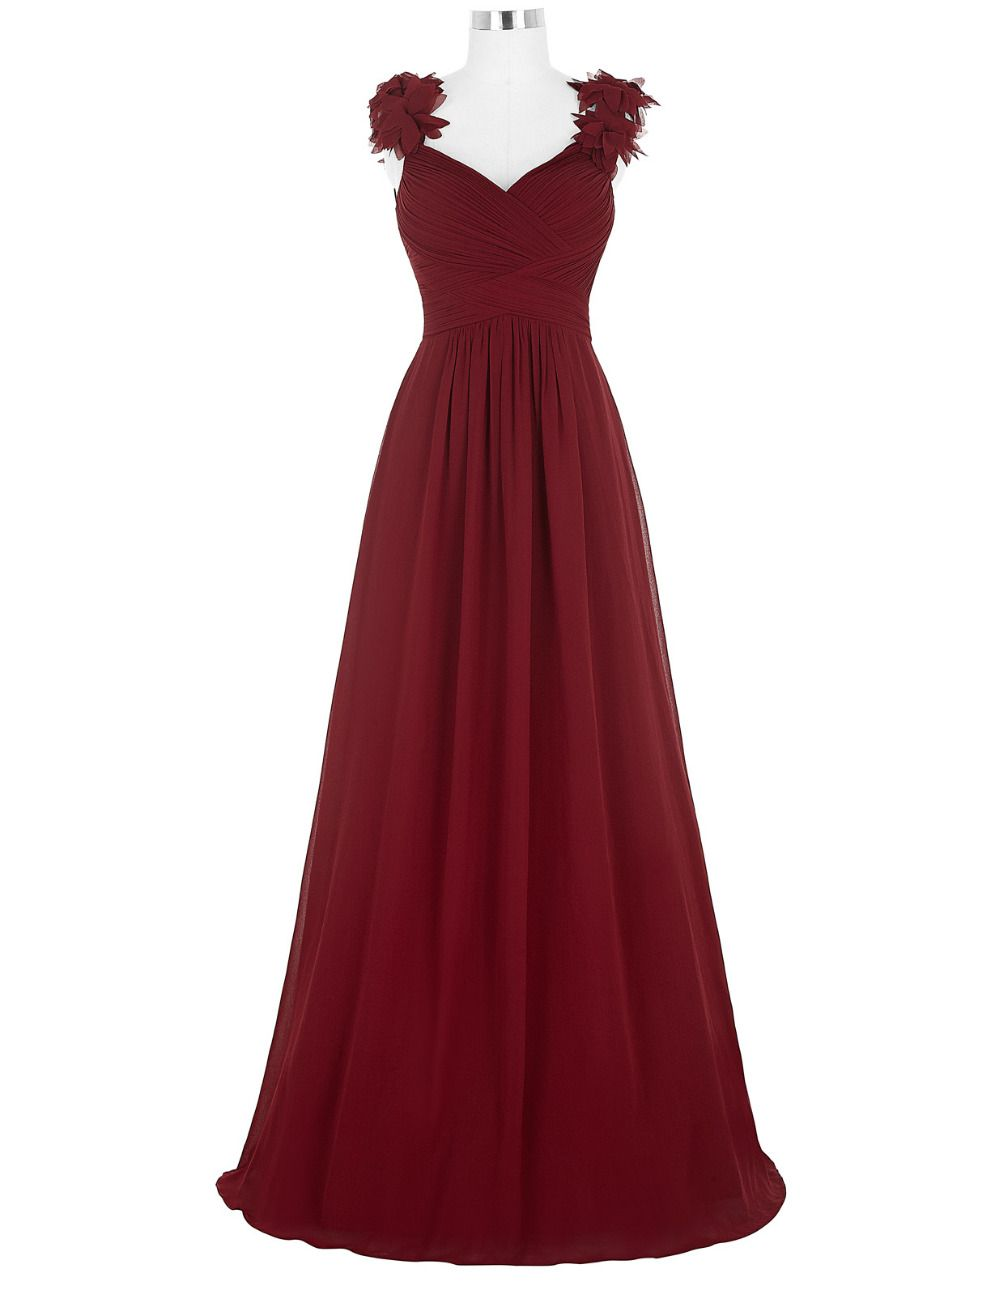 Prom dressesevening dresslong evening dress sexy v neck ruched